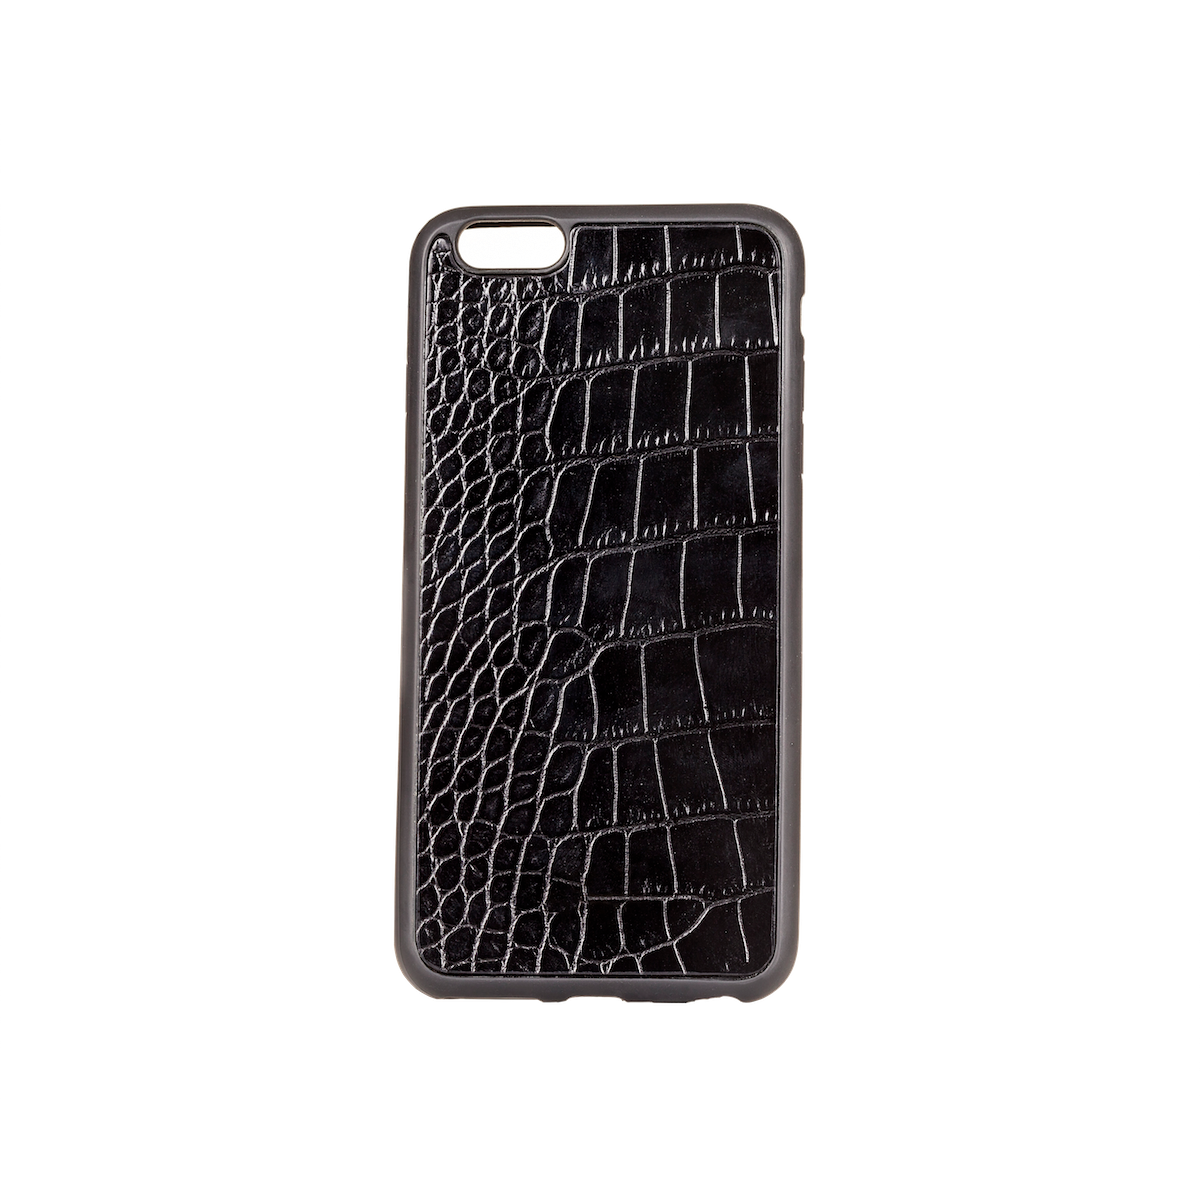 Iphone 6 Plus Case, Black Croco Leather, MAISON JMK-VONMEL Luxe Gifts